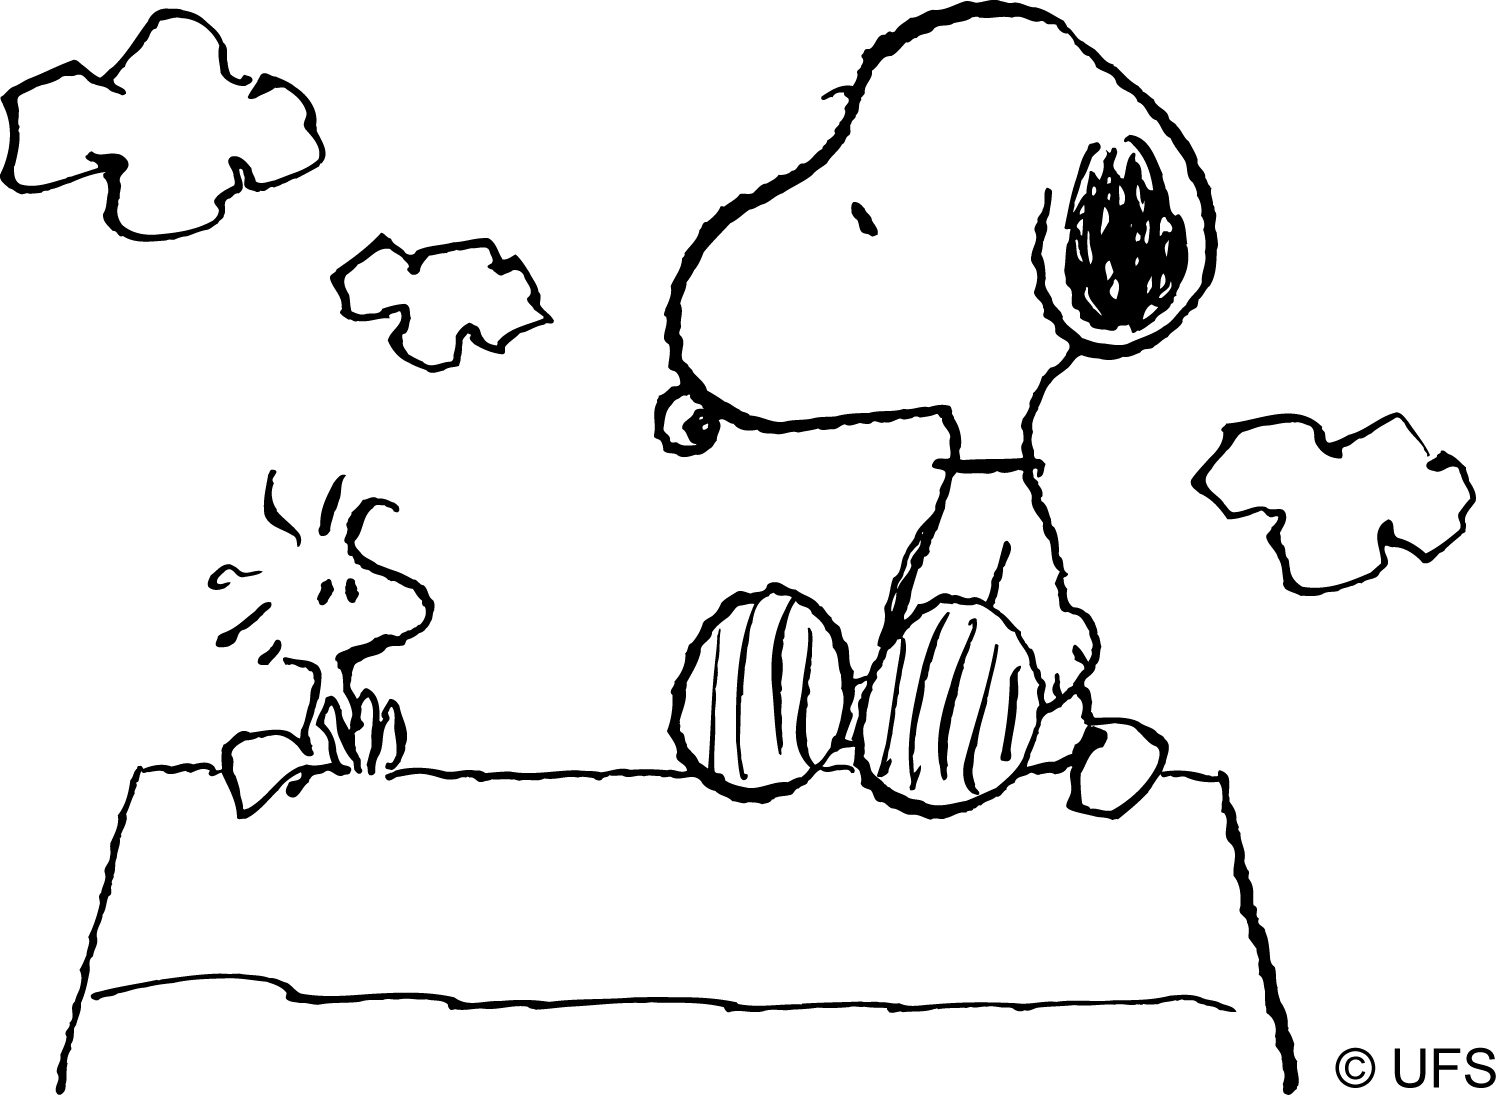 Funny adventures of a tiny dog Snoopy 20 Snoopy coloring pages ...